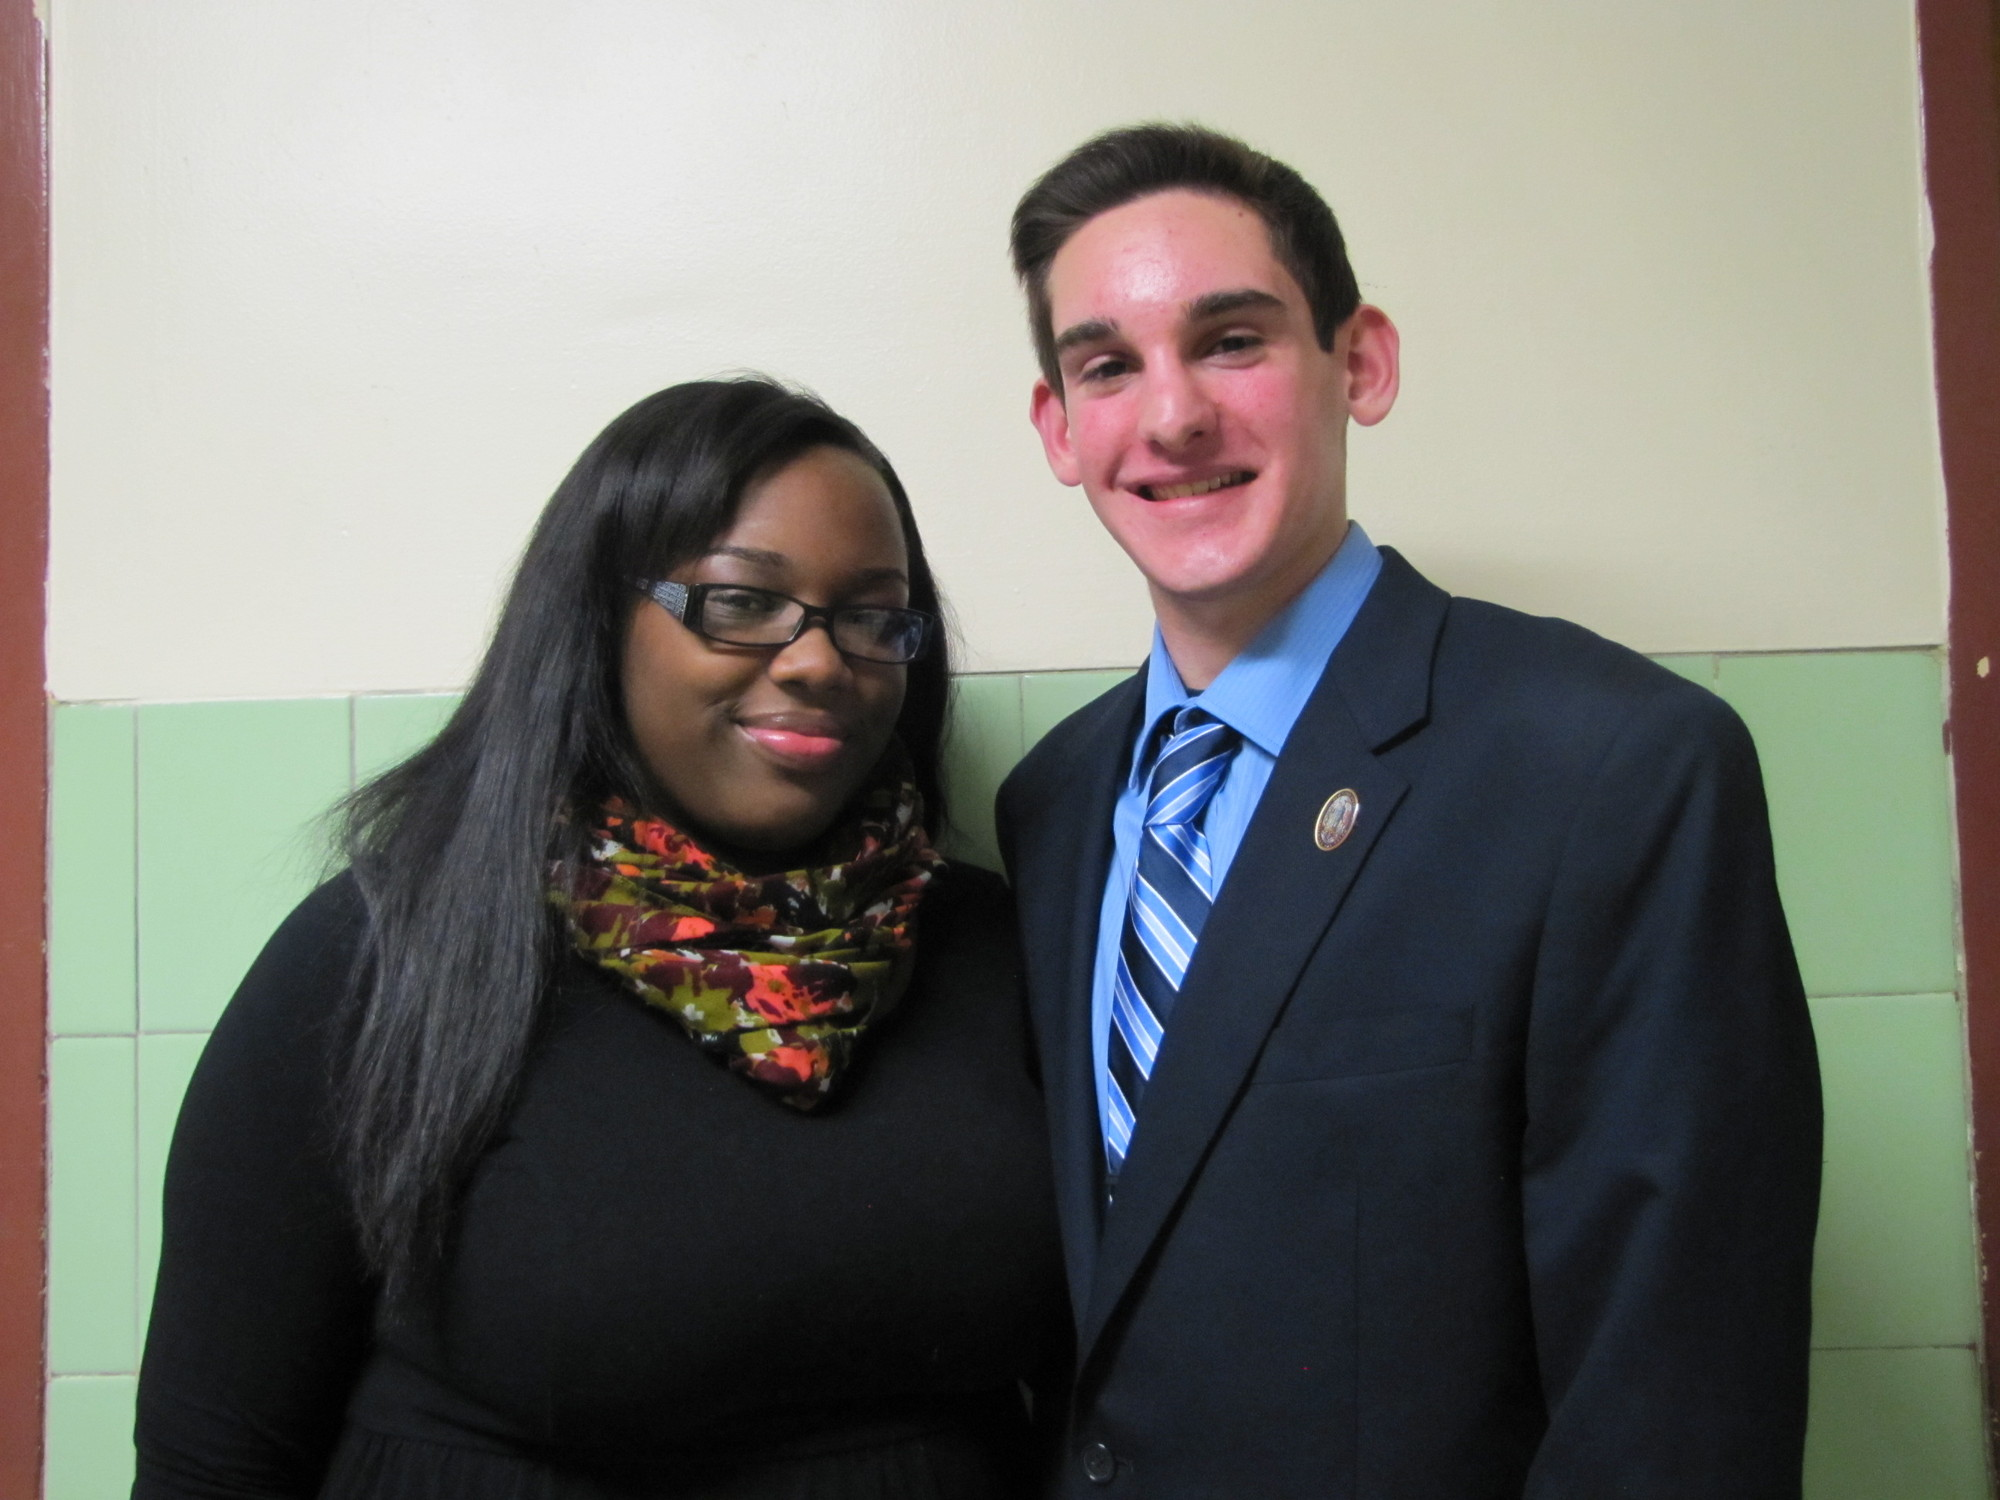 Nia Pollard and Steven Gandolfo were recently named Malverne High School's respective valedictorian and salutatorian for the Class of 2014.